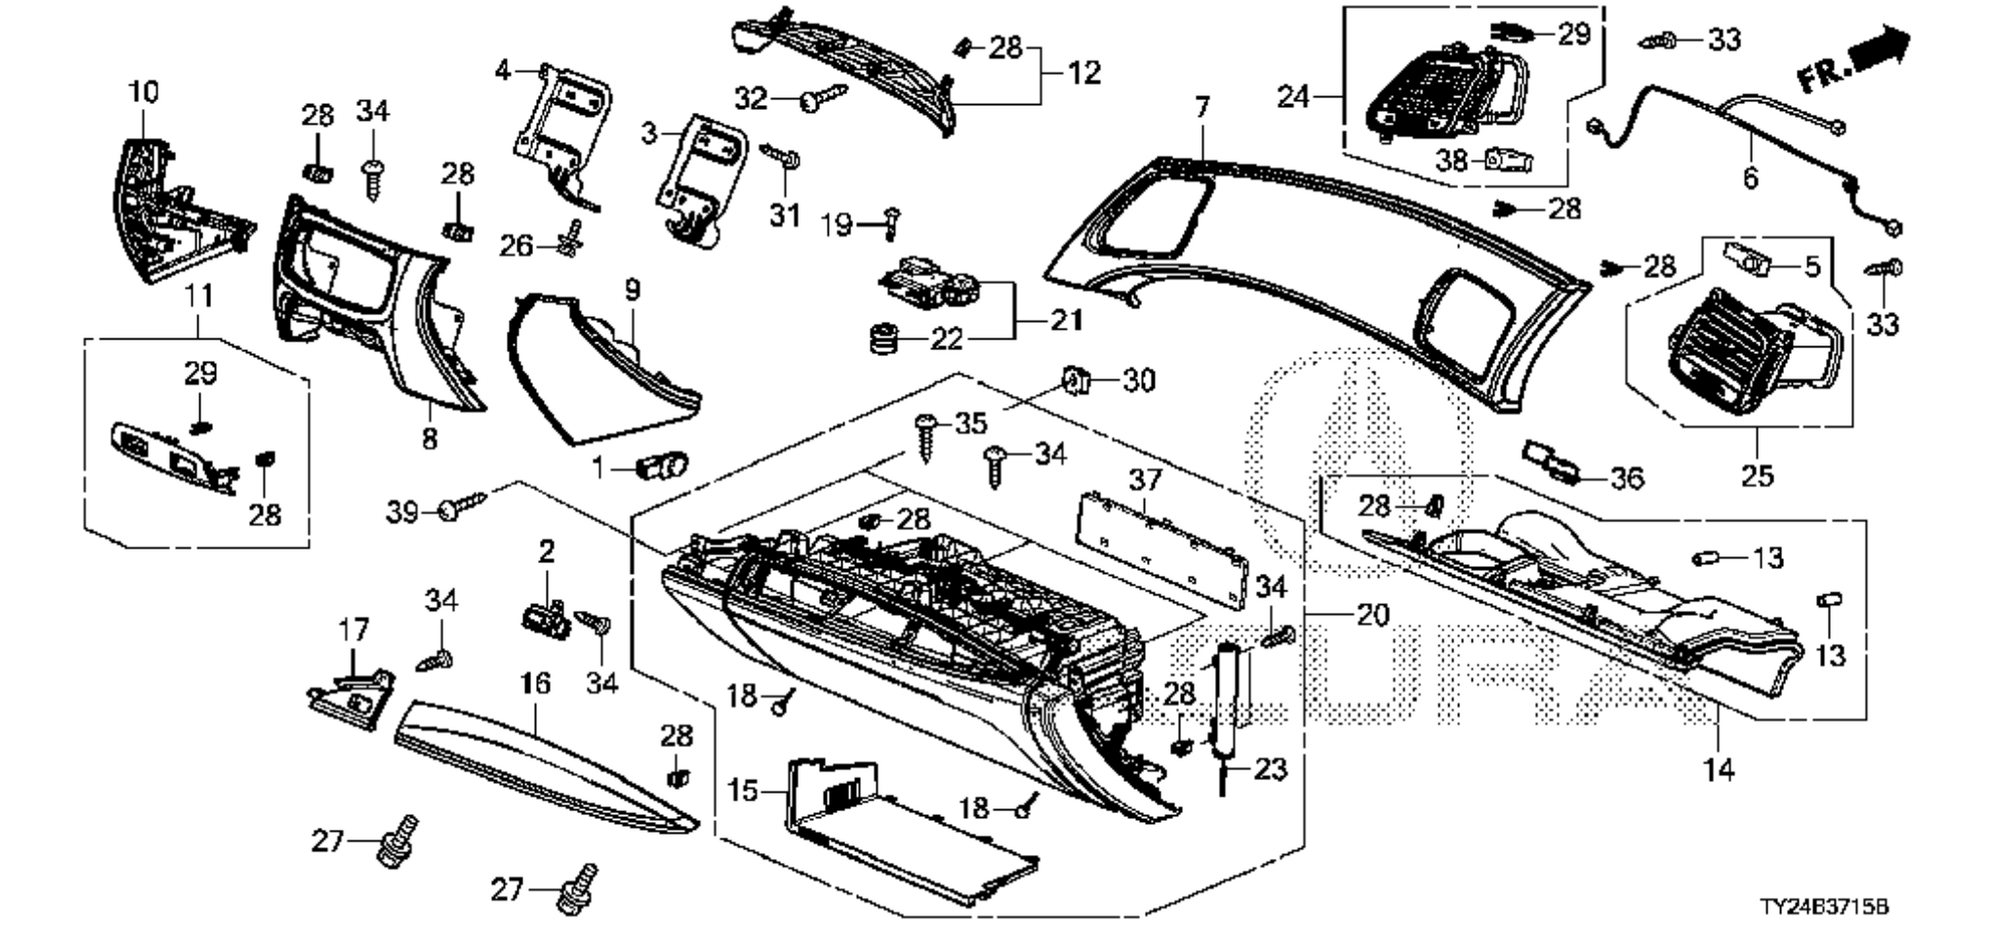 Acura Legend Motor Mount Diagram